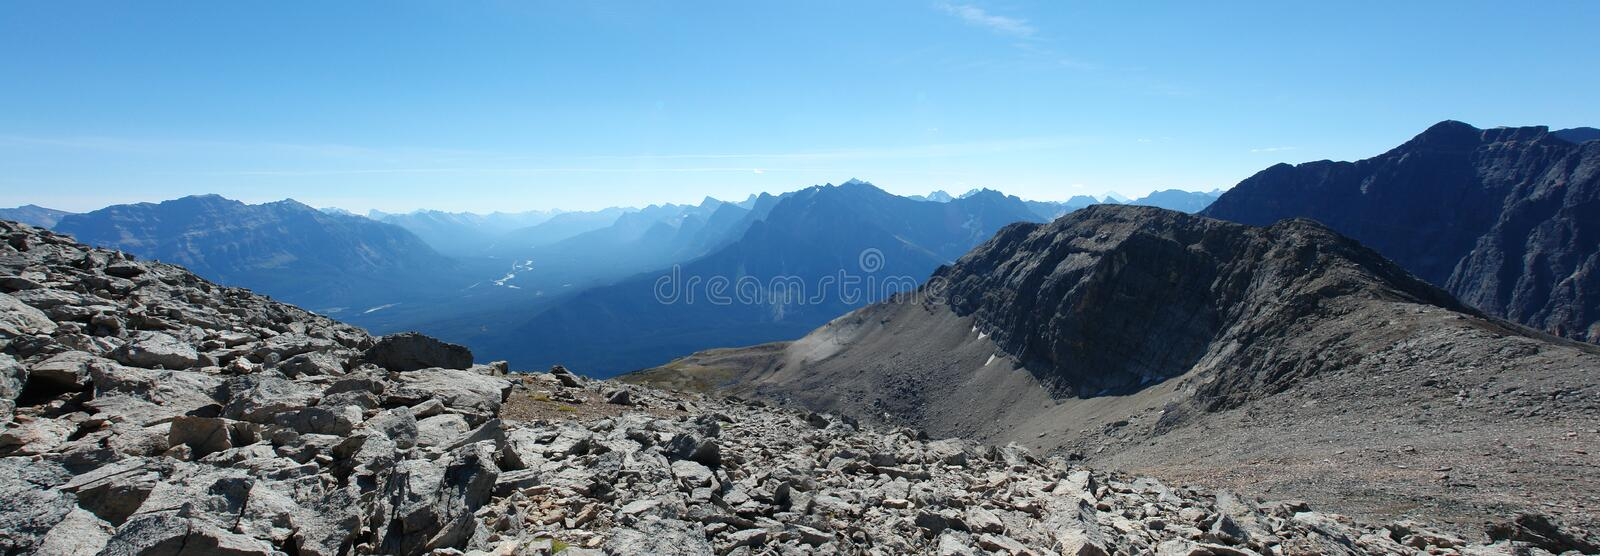 Rocky mountains and athabasca valley. Summer view of the canadian rocky mountains and the athabasca valley, jasper national park, alberta, canada royalty free stock photos